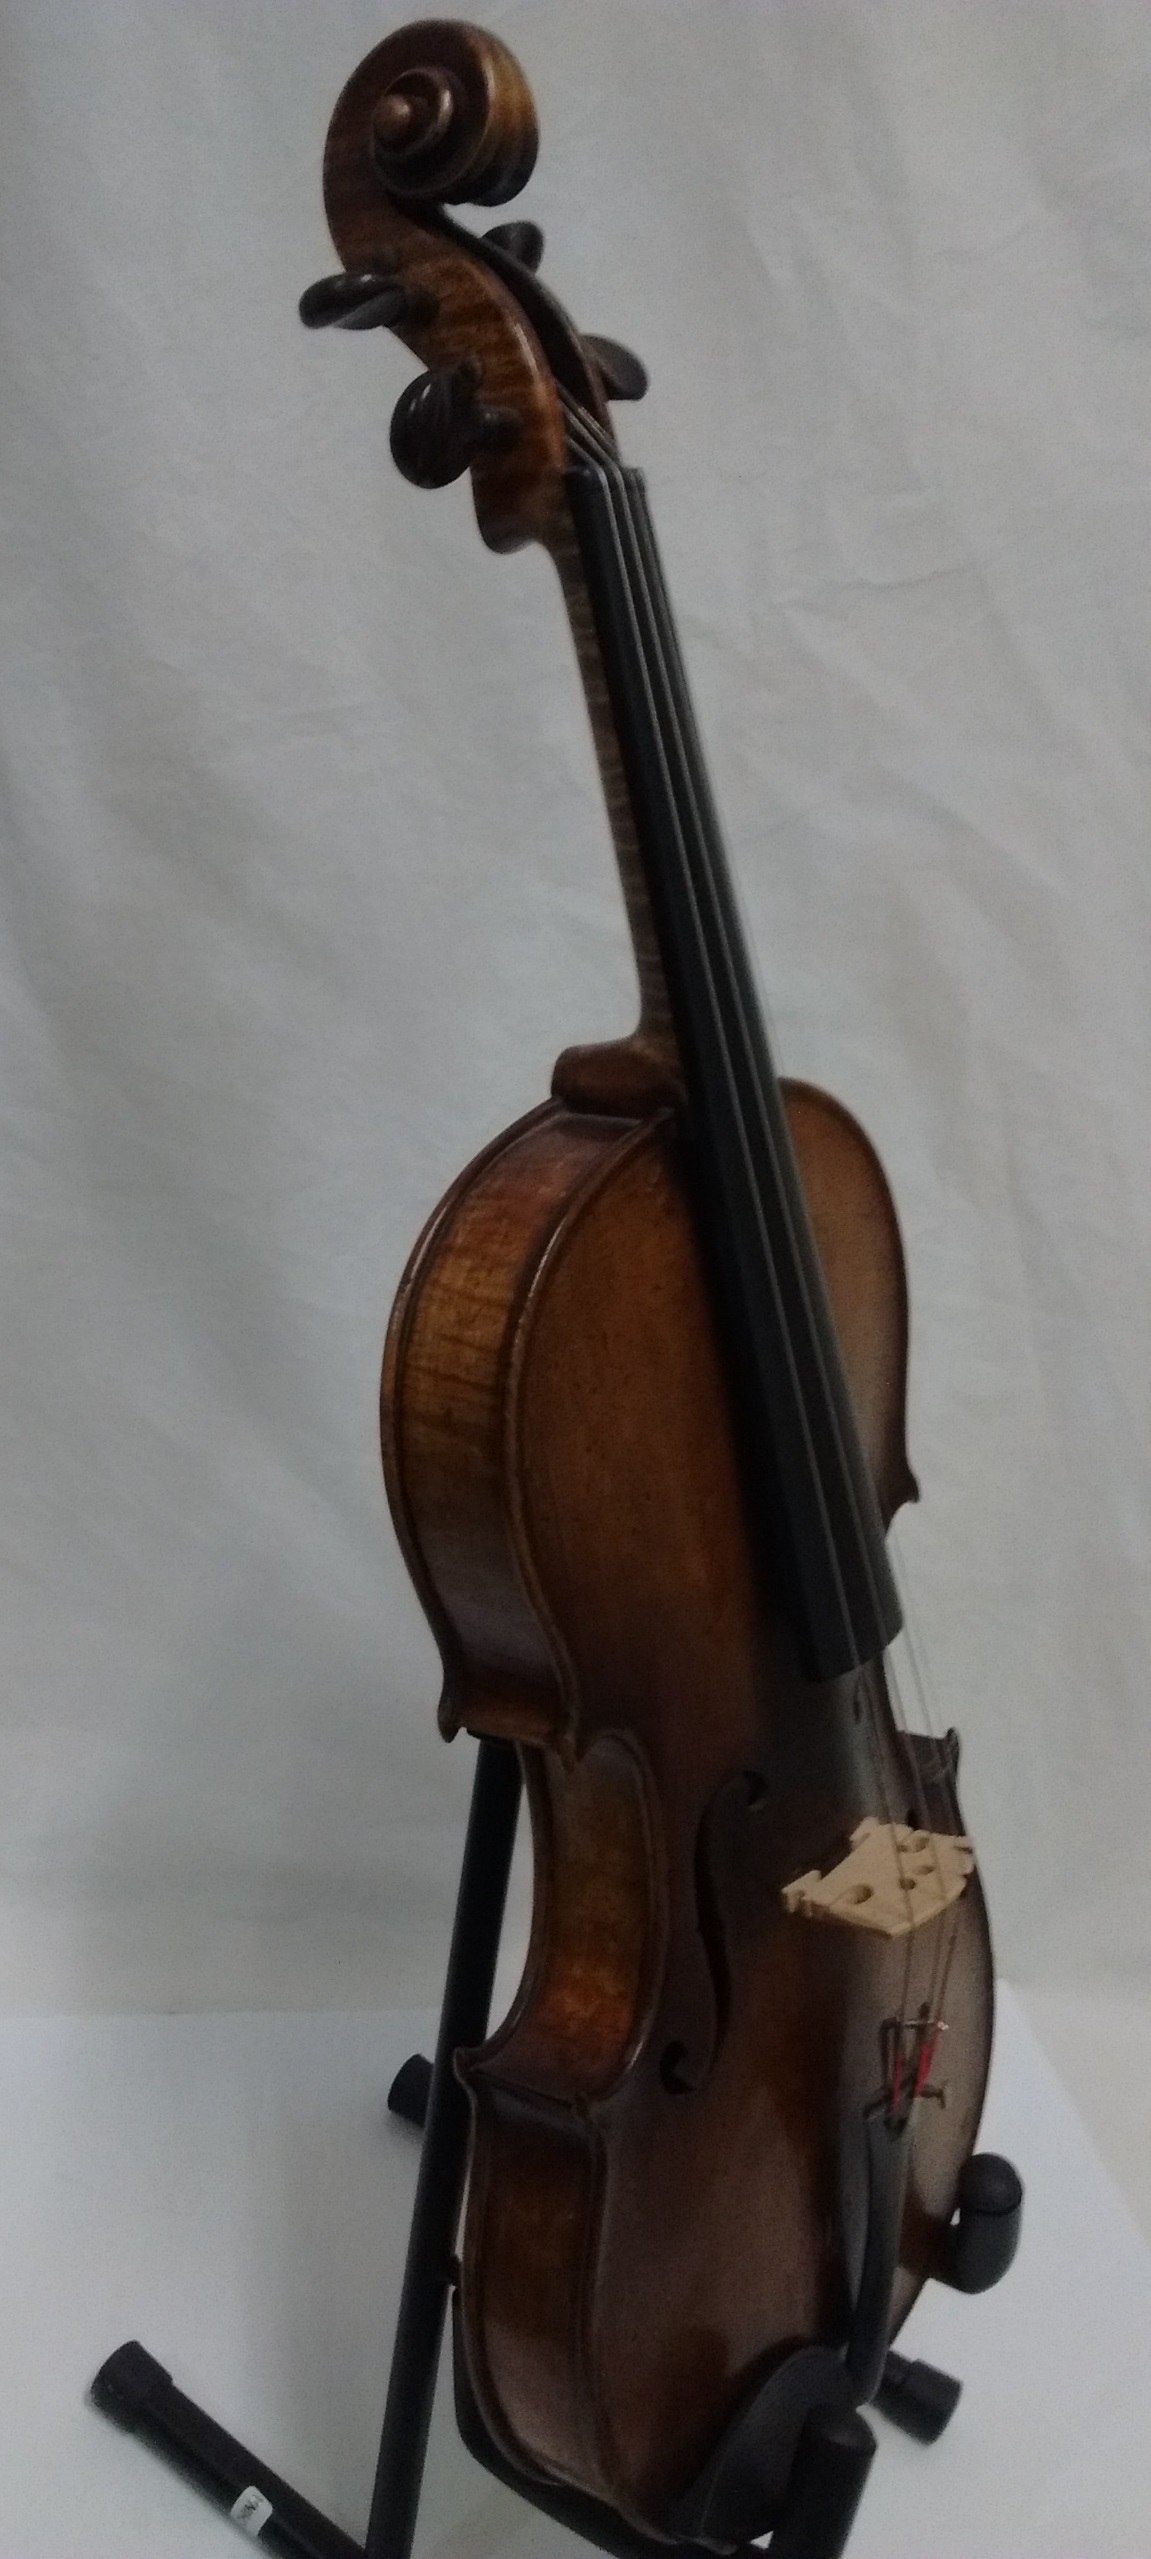 AmatusFiddle-SideView.jpg